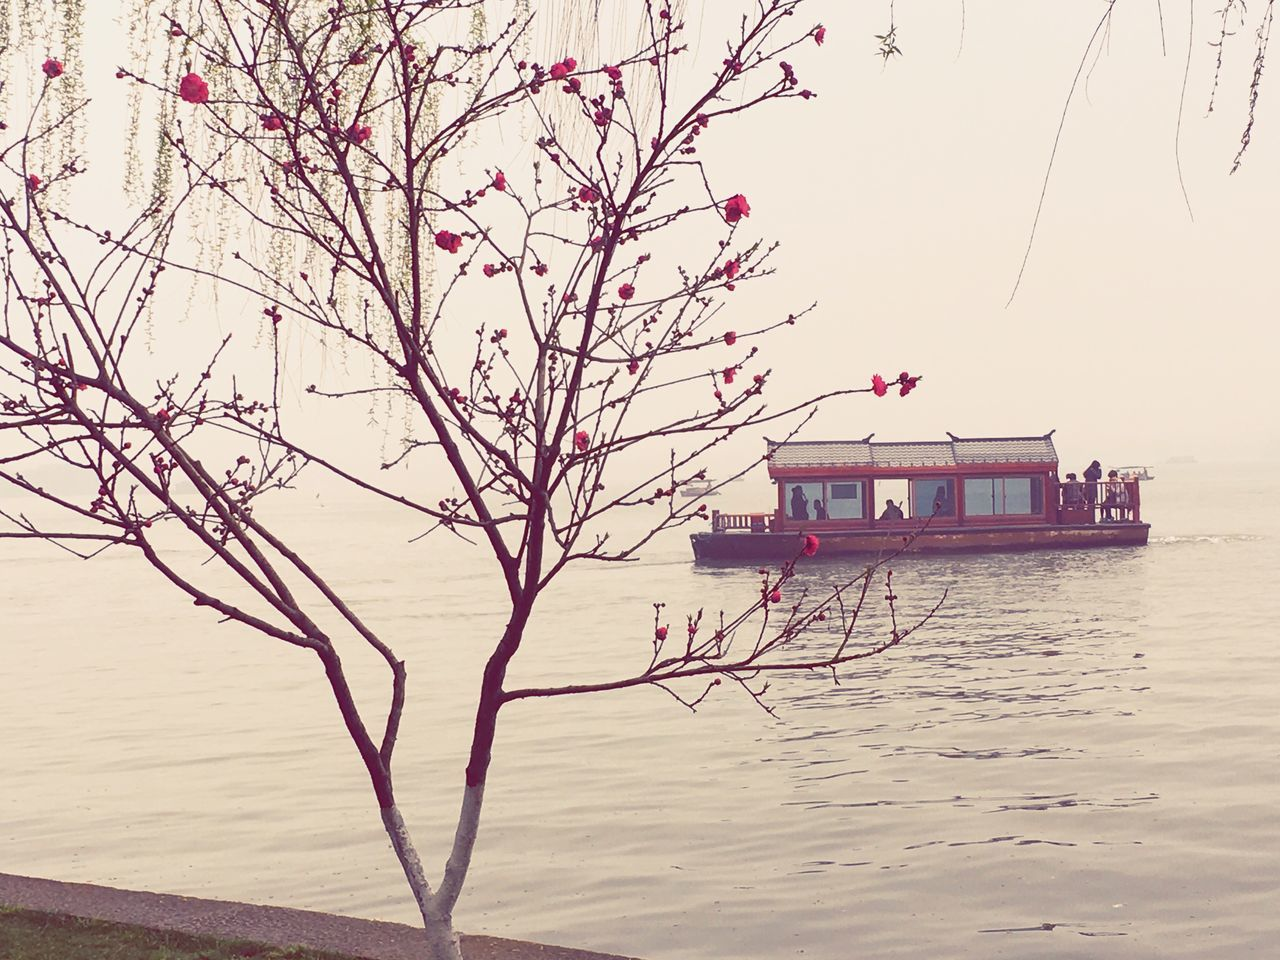 water, nature, tree, branch, beauty in nature, waterfront, nautical vessel, scenics, outdoors, houseboat, transportation, tranquility, bare tree, no people, lake, day, clear sky, sky